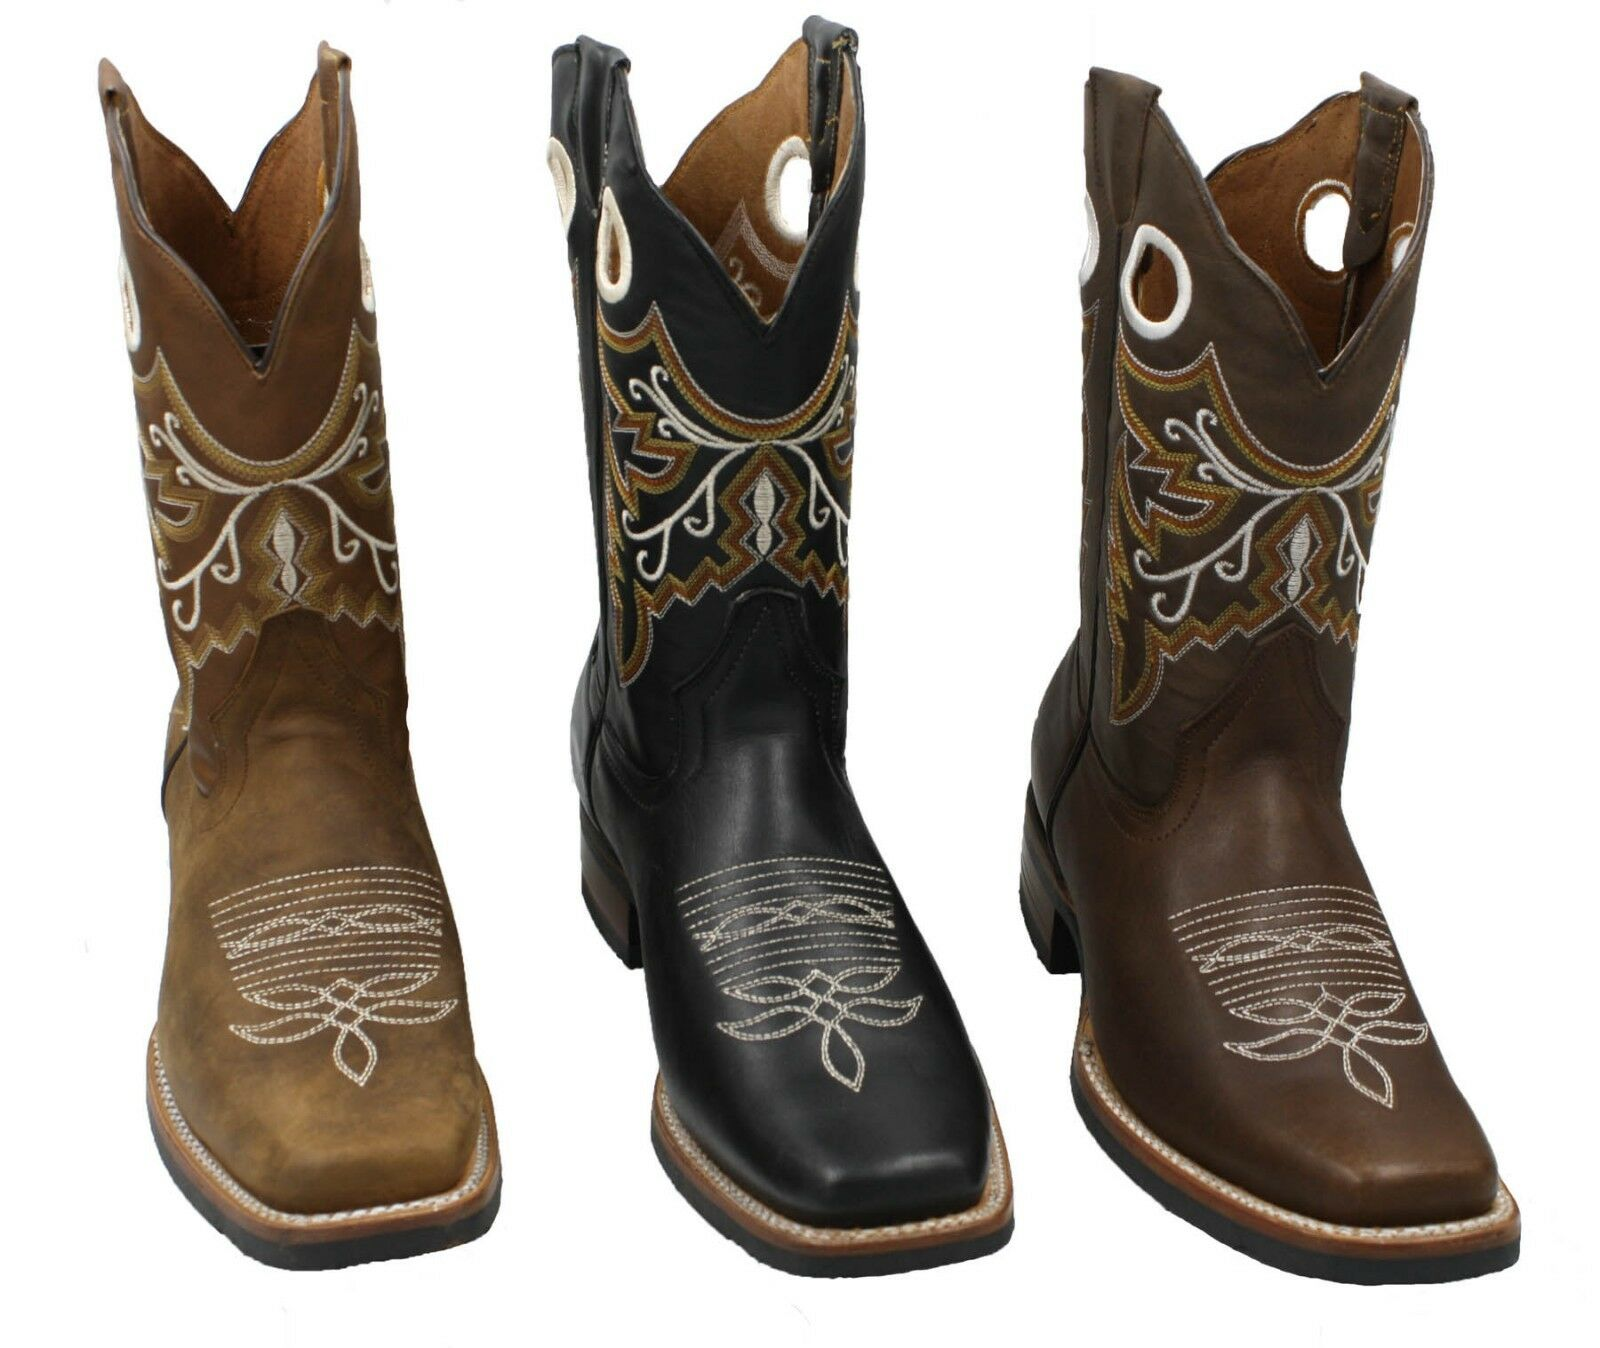 hommes RODEO COWBOY bottes GENUINE LEATHER WESTERN SQUARE TOE bottes-CARR 360